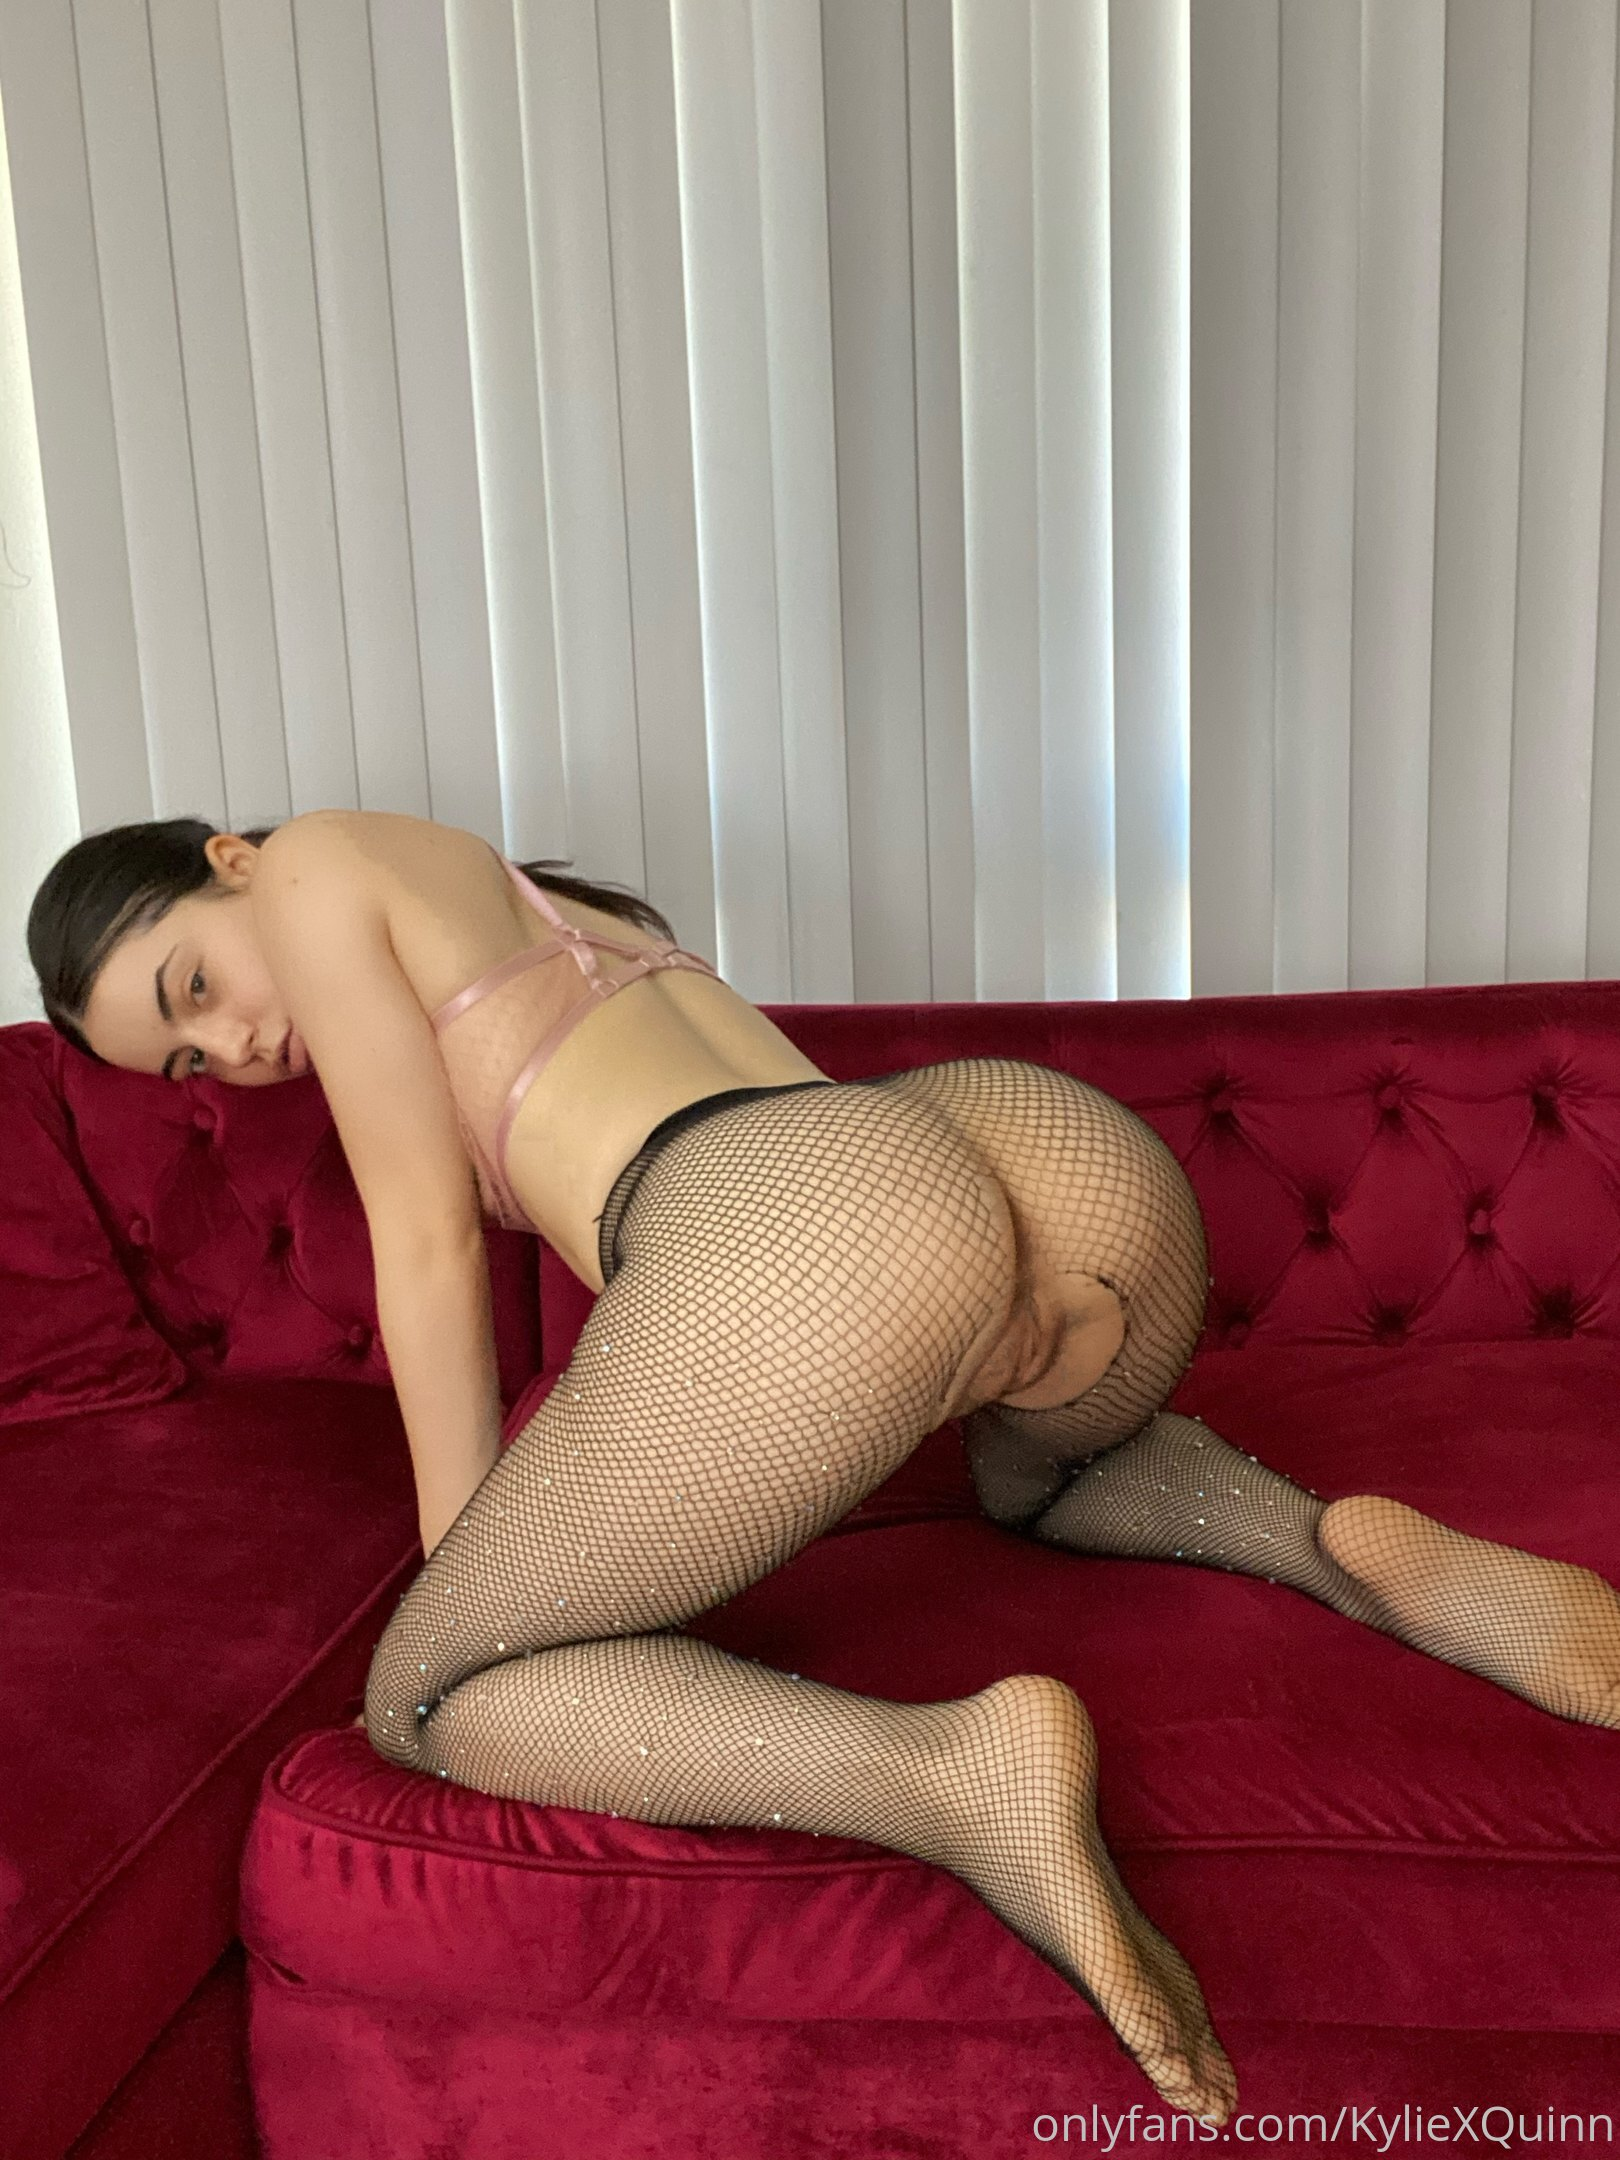 Kylie Xy, Kyliexquinn, Onlyfans (25)